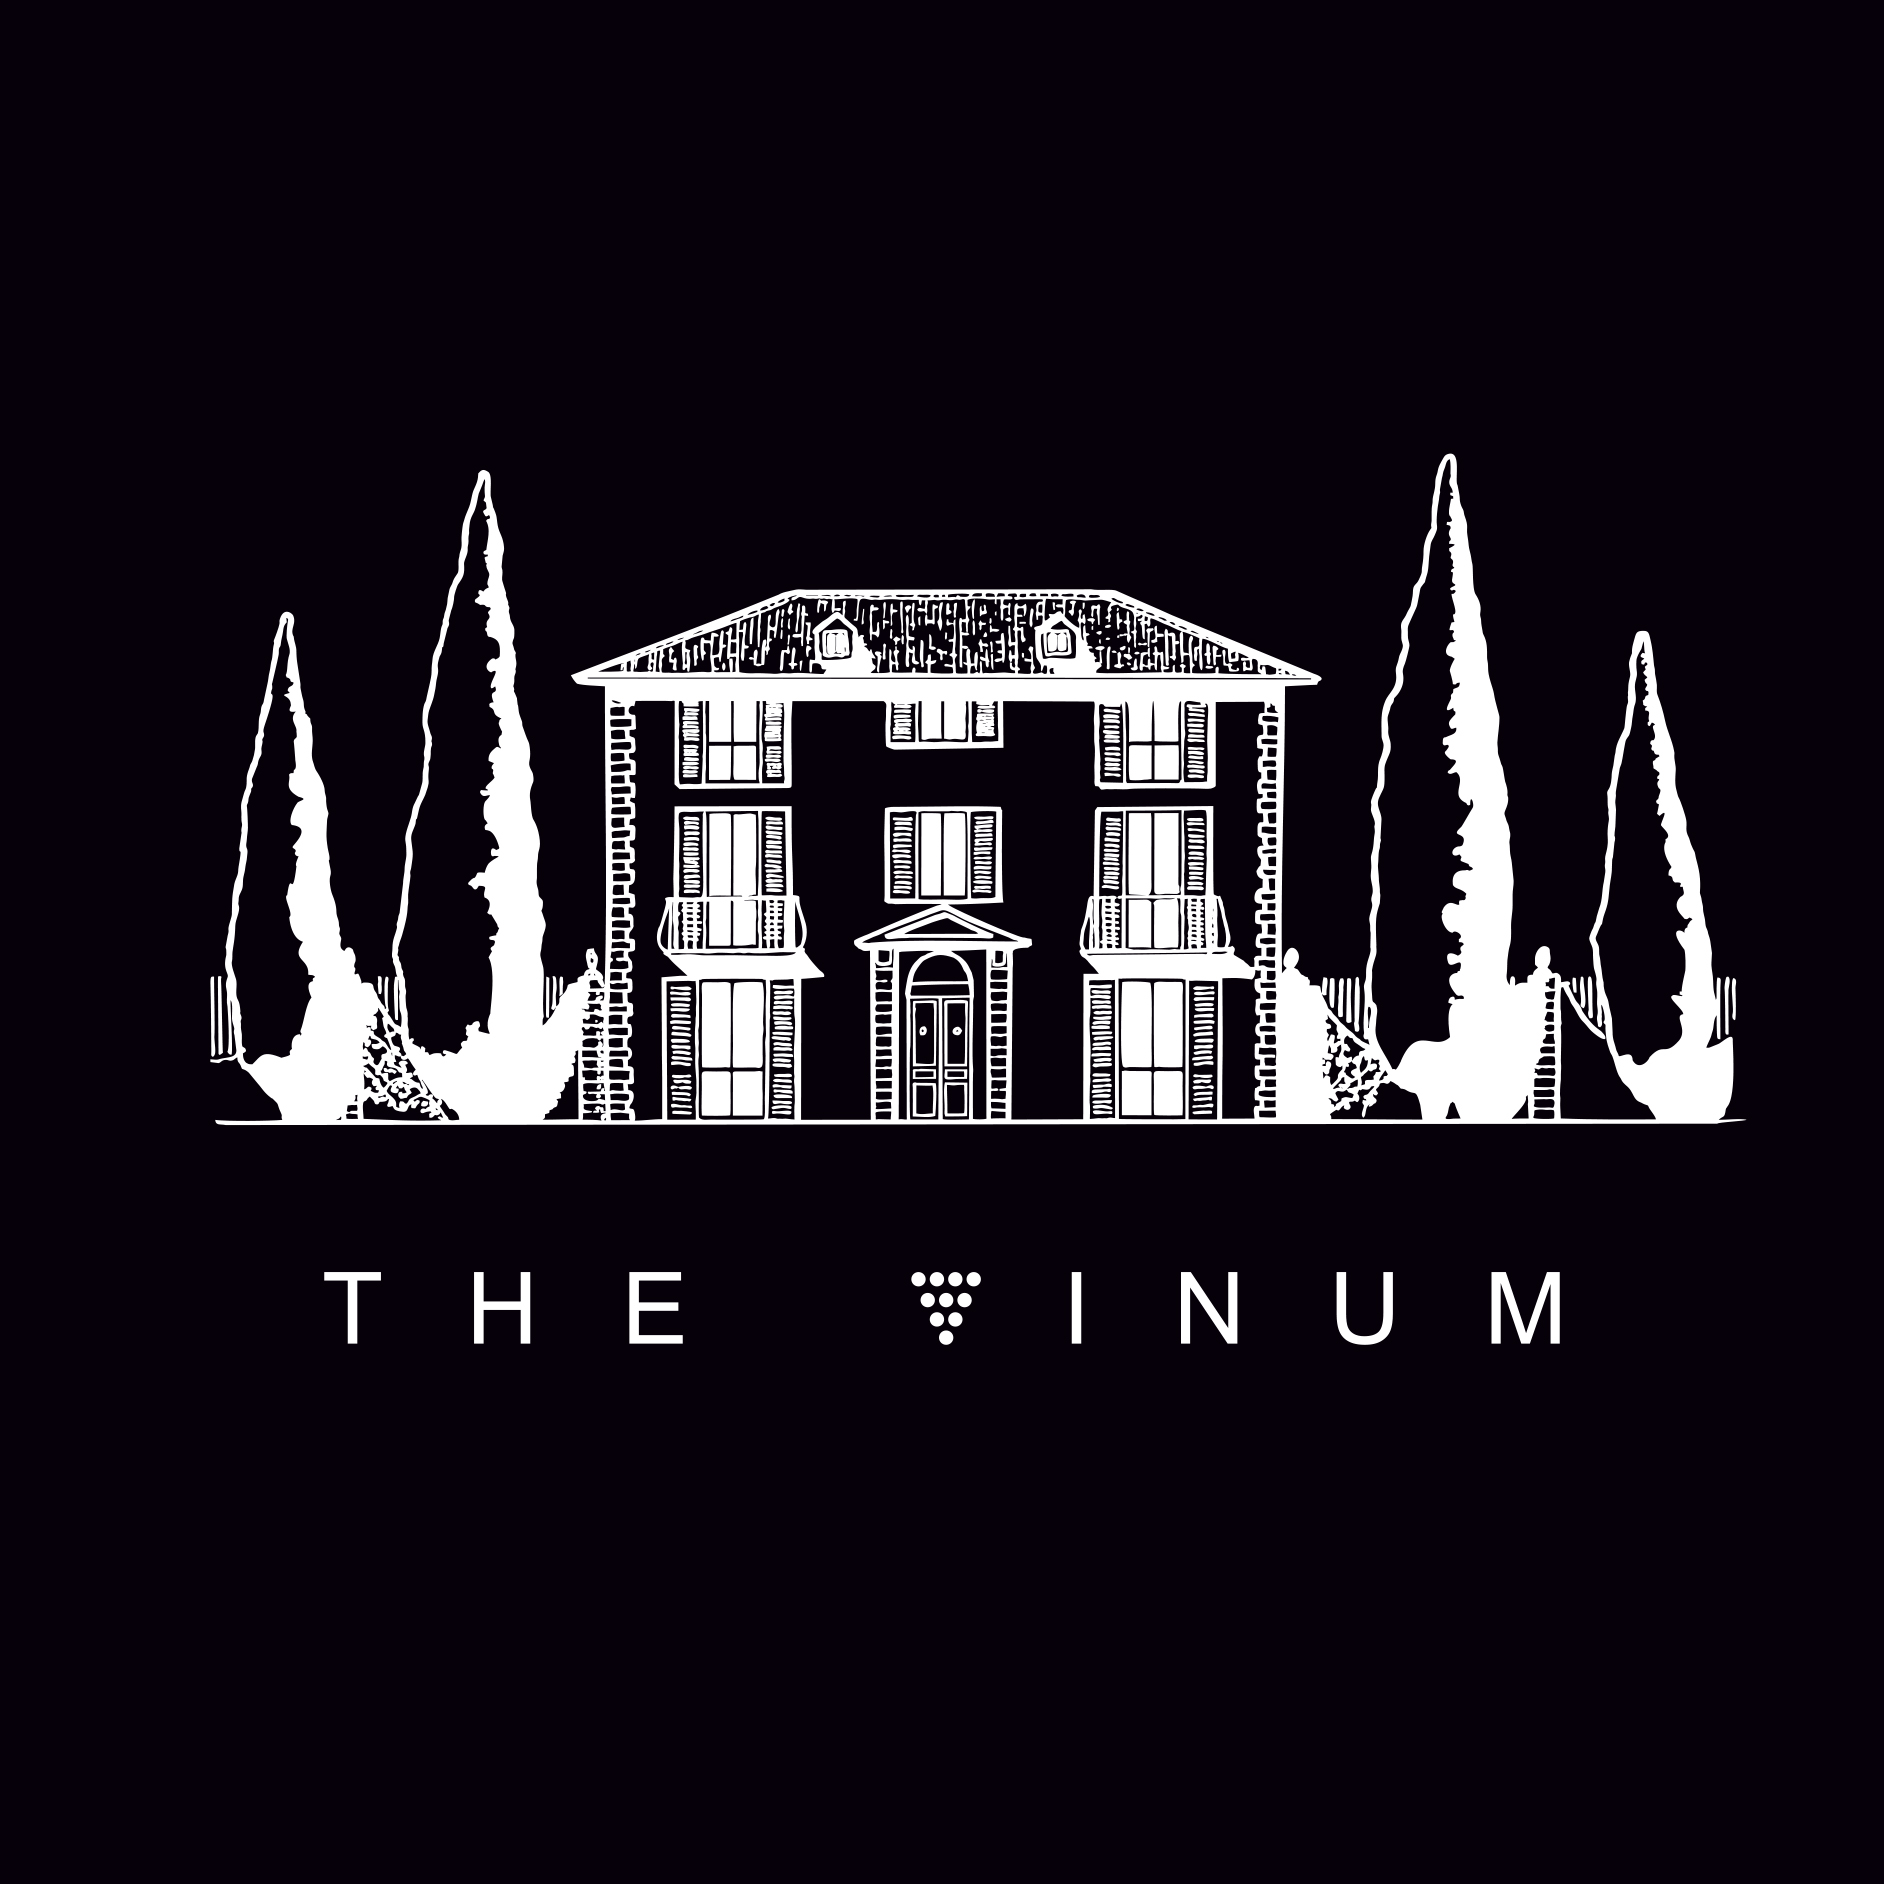 THE VINUM